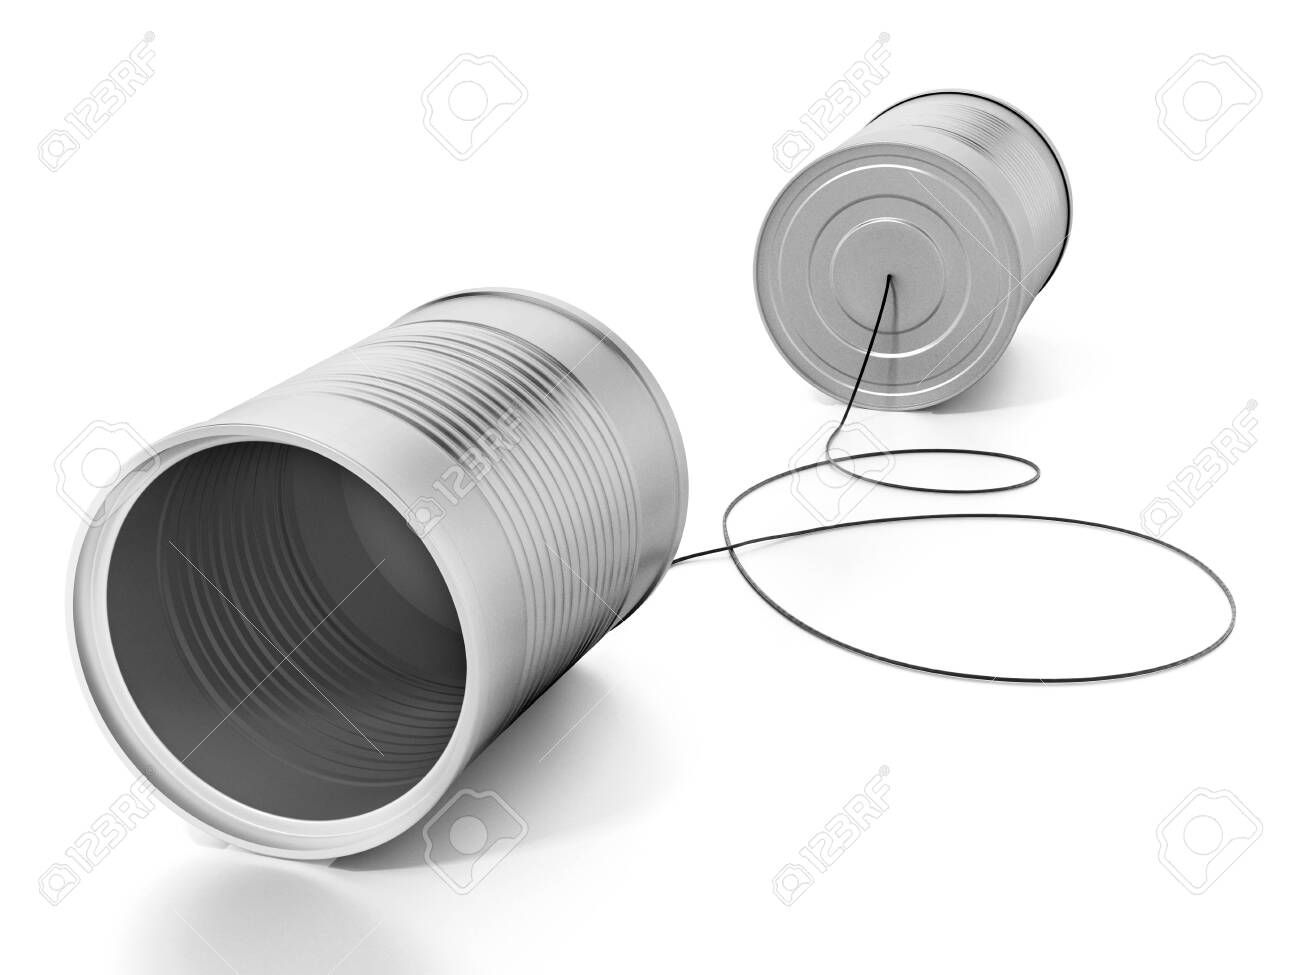 Tin cans connected to each other with a rope. 3D illustration. - 123447561